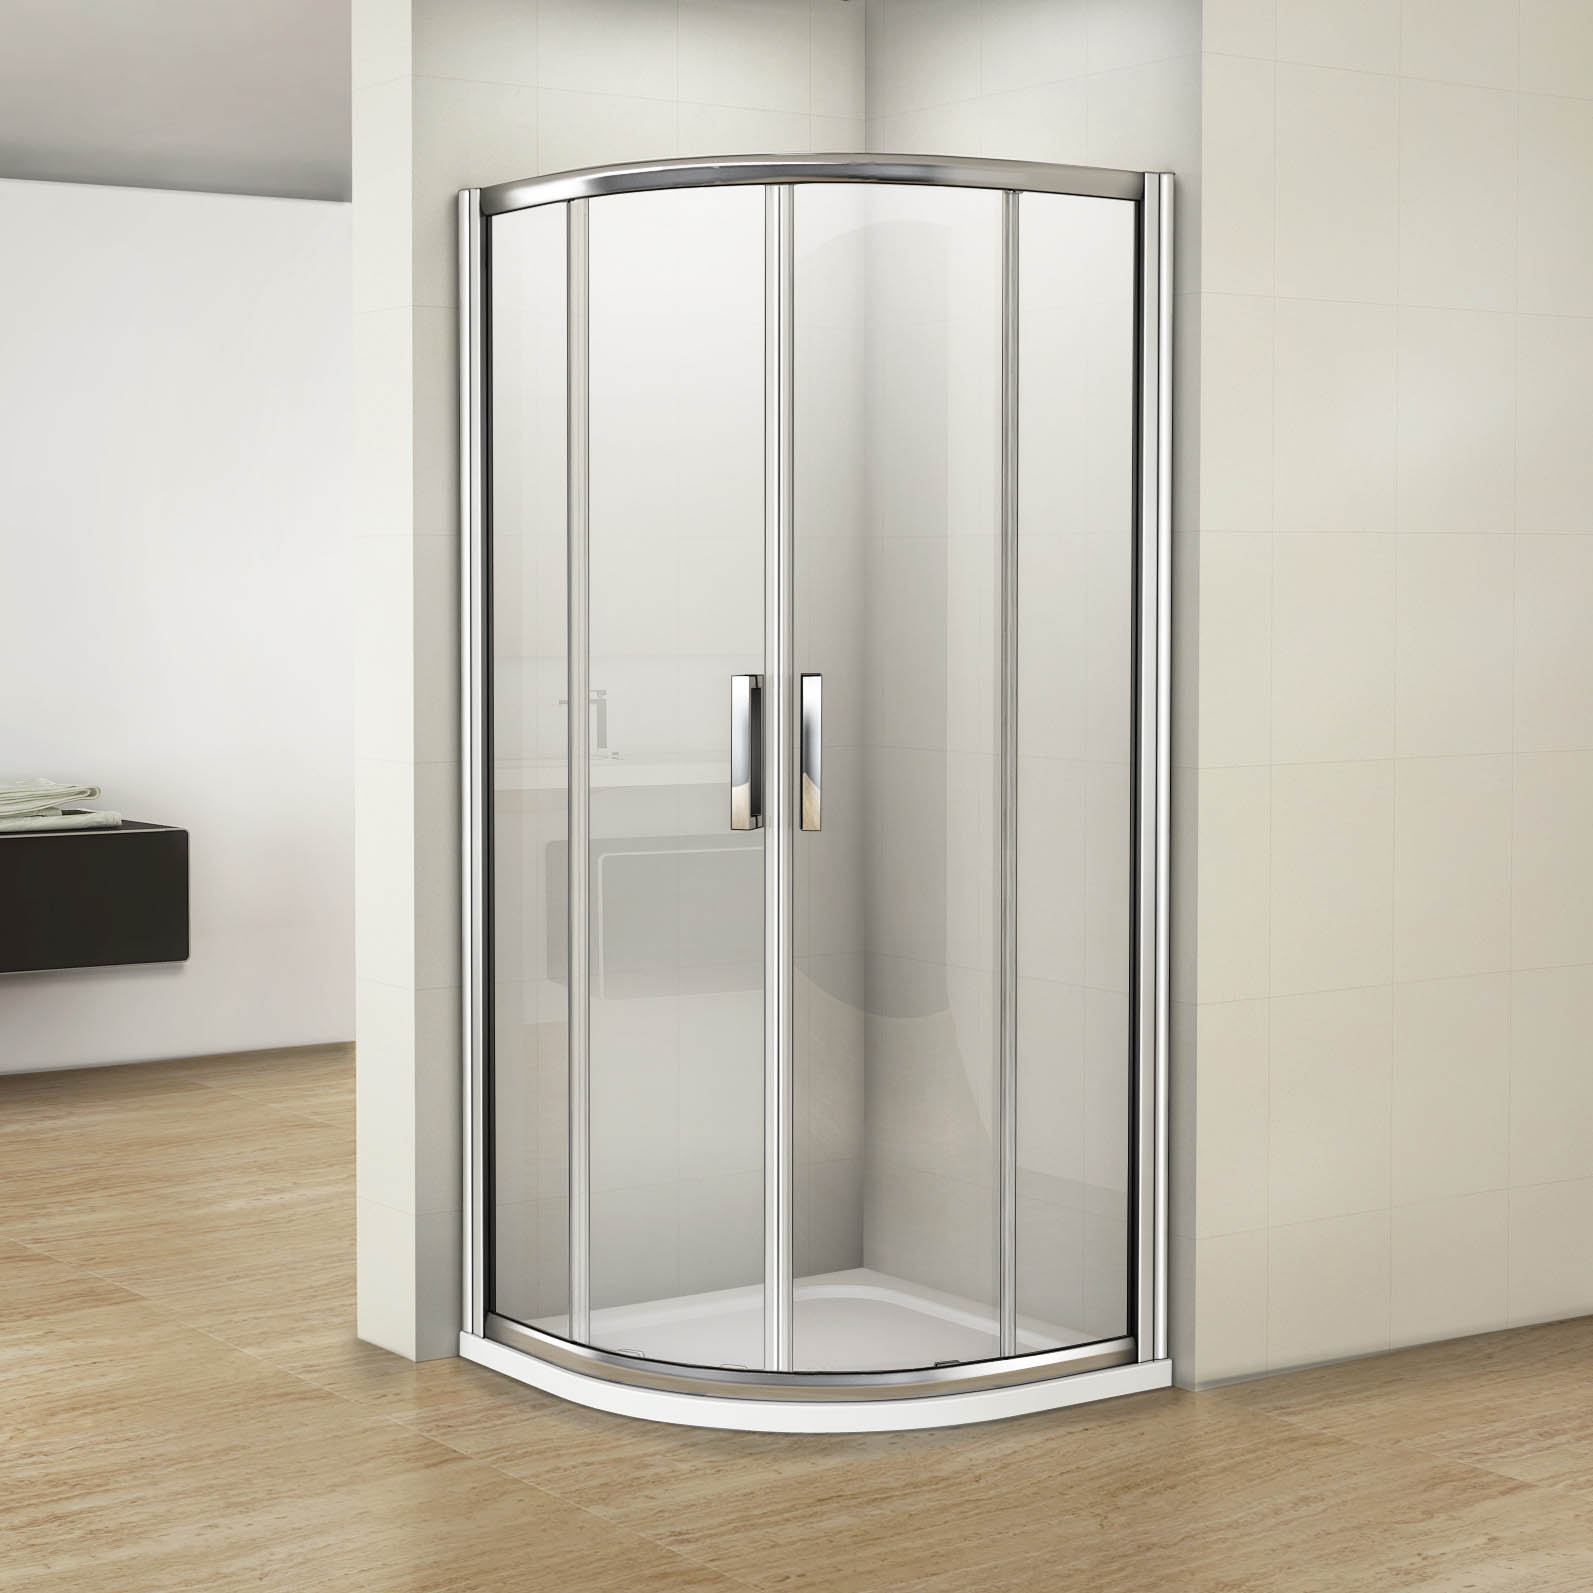 Luxury Quadrant Shower Enclosure Easy Clean 8mm Glass Bathroom ...